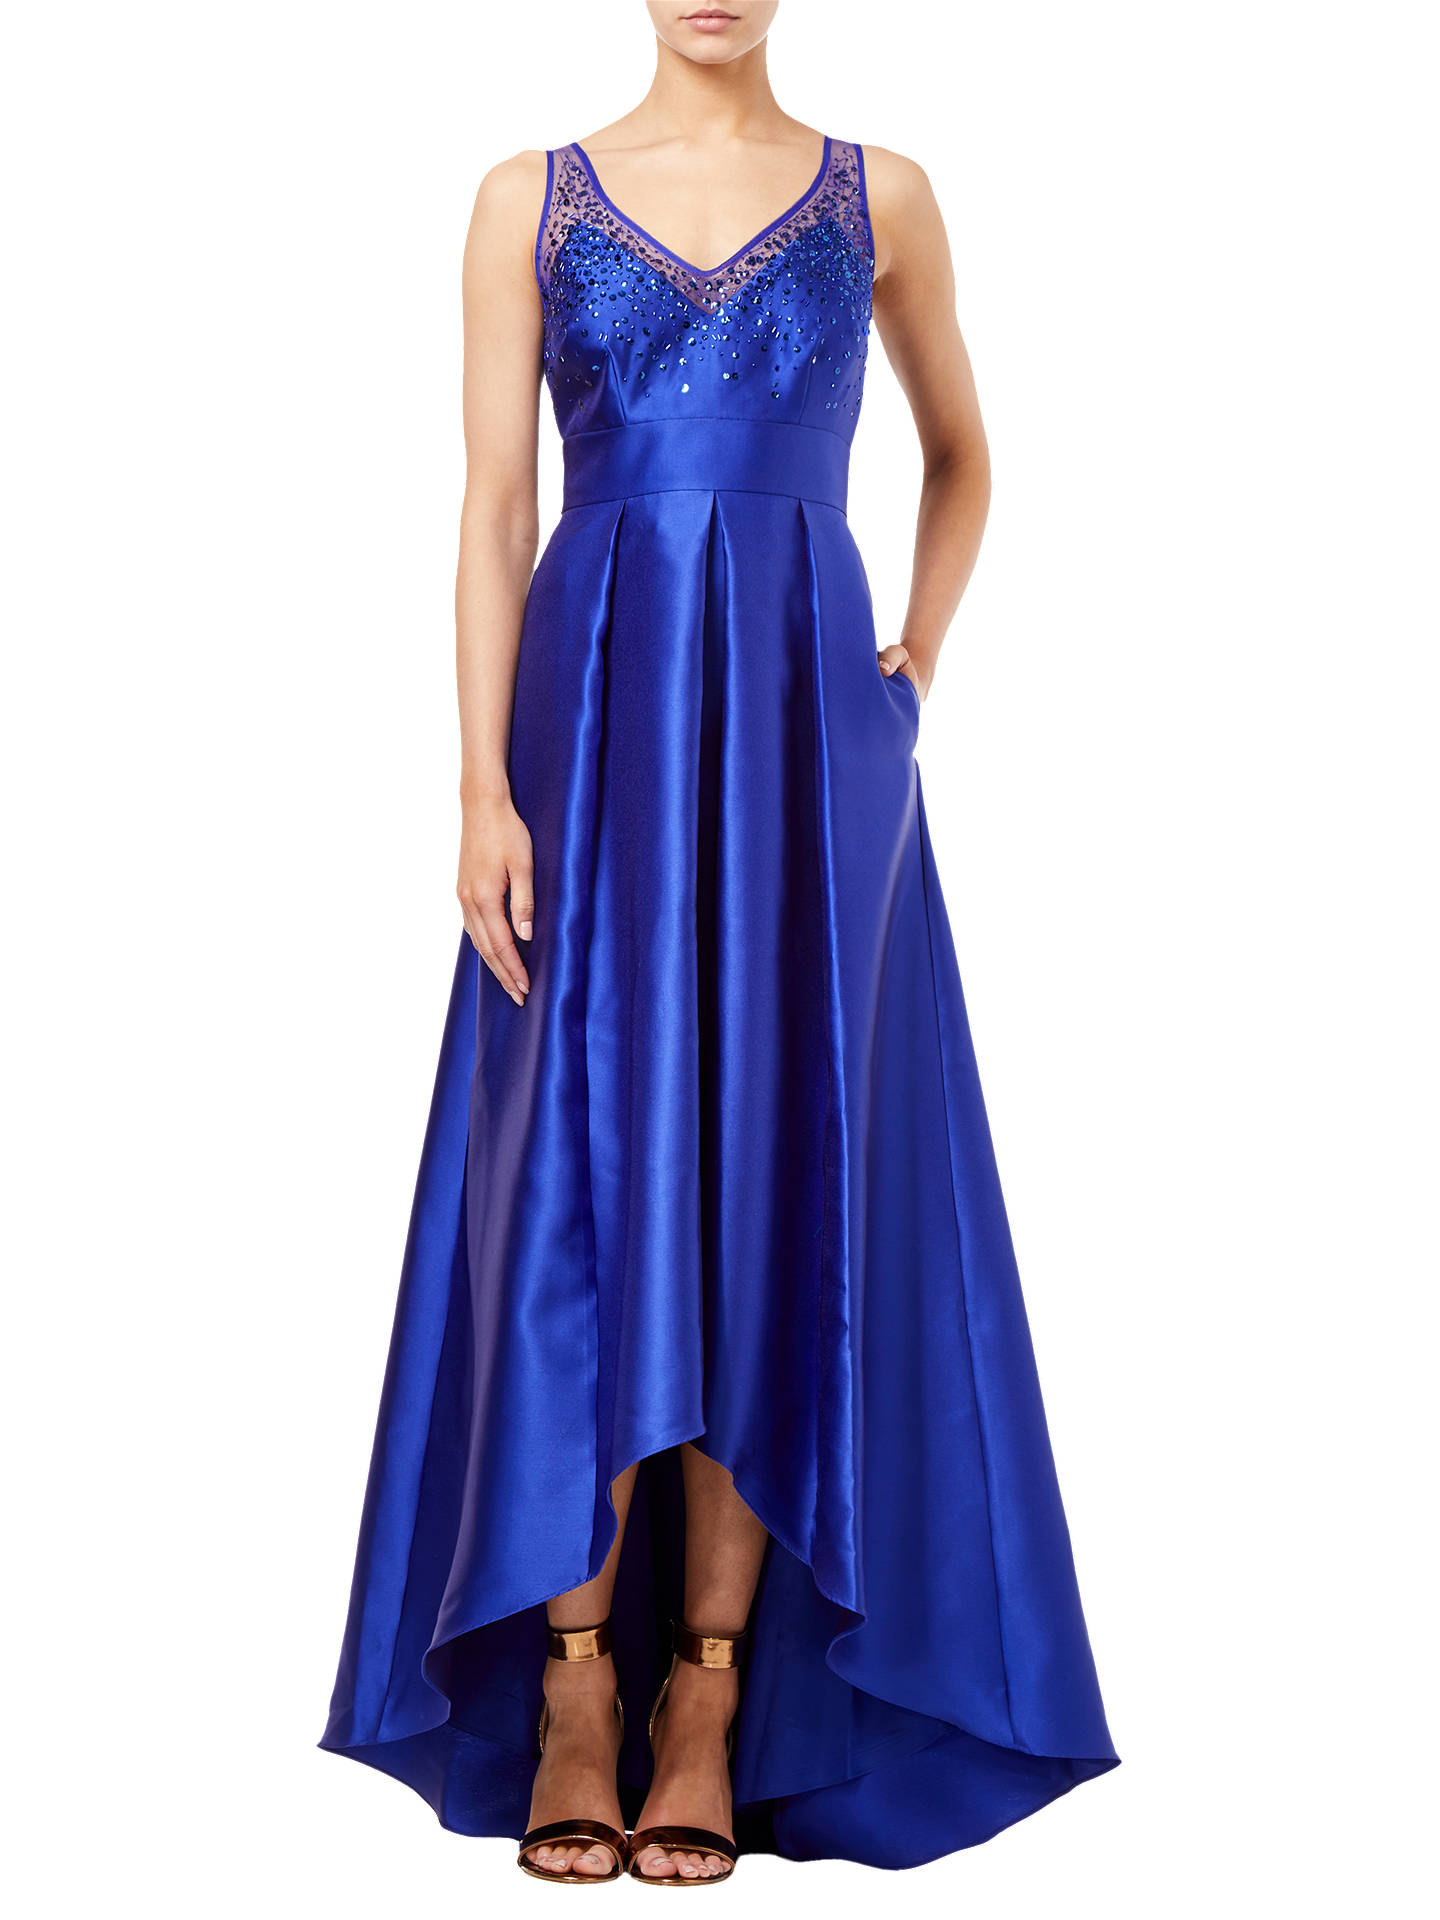 Buy Adrianna Papell Mikado Illusion Dress, Neptune Blue, 8 Online at johnlewis.com